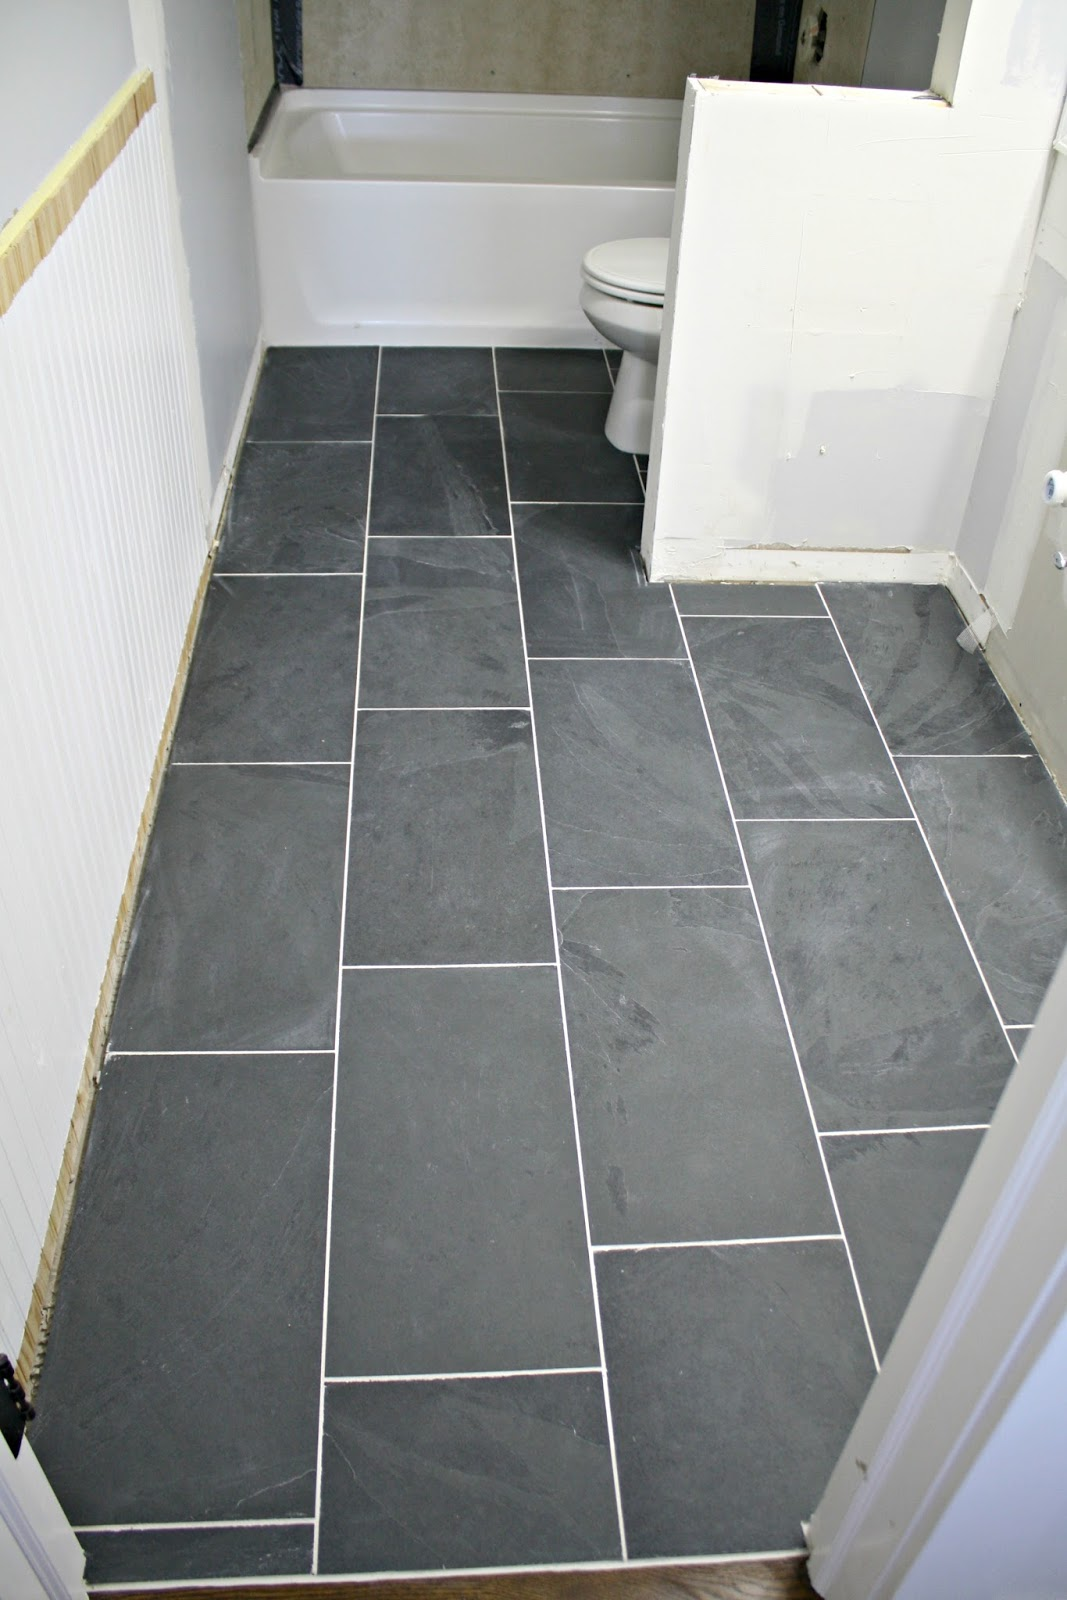 How to tile a bathroom floor it 39 s done white homes for 12x24 tile patterns floor